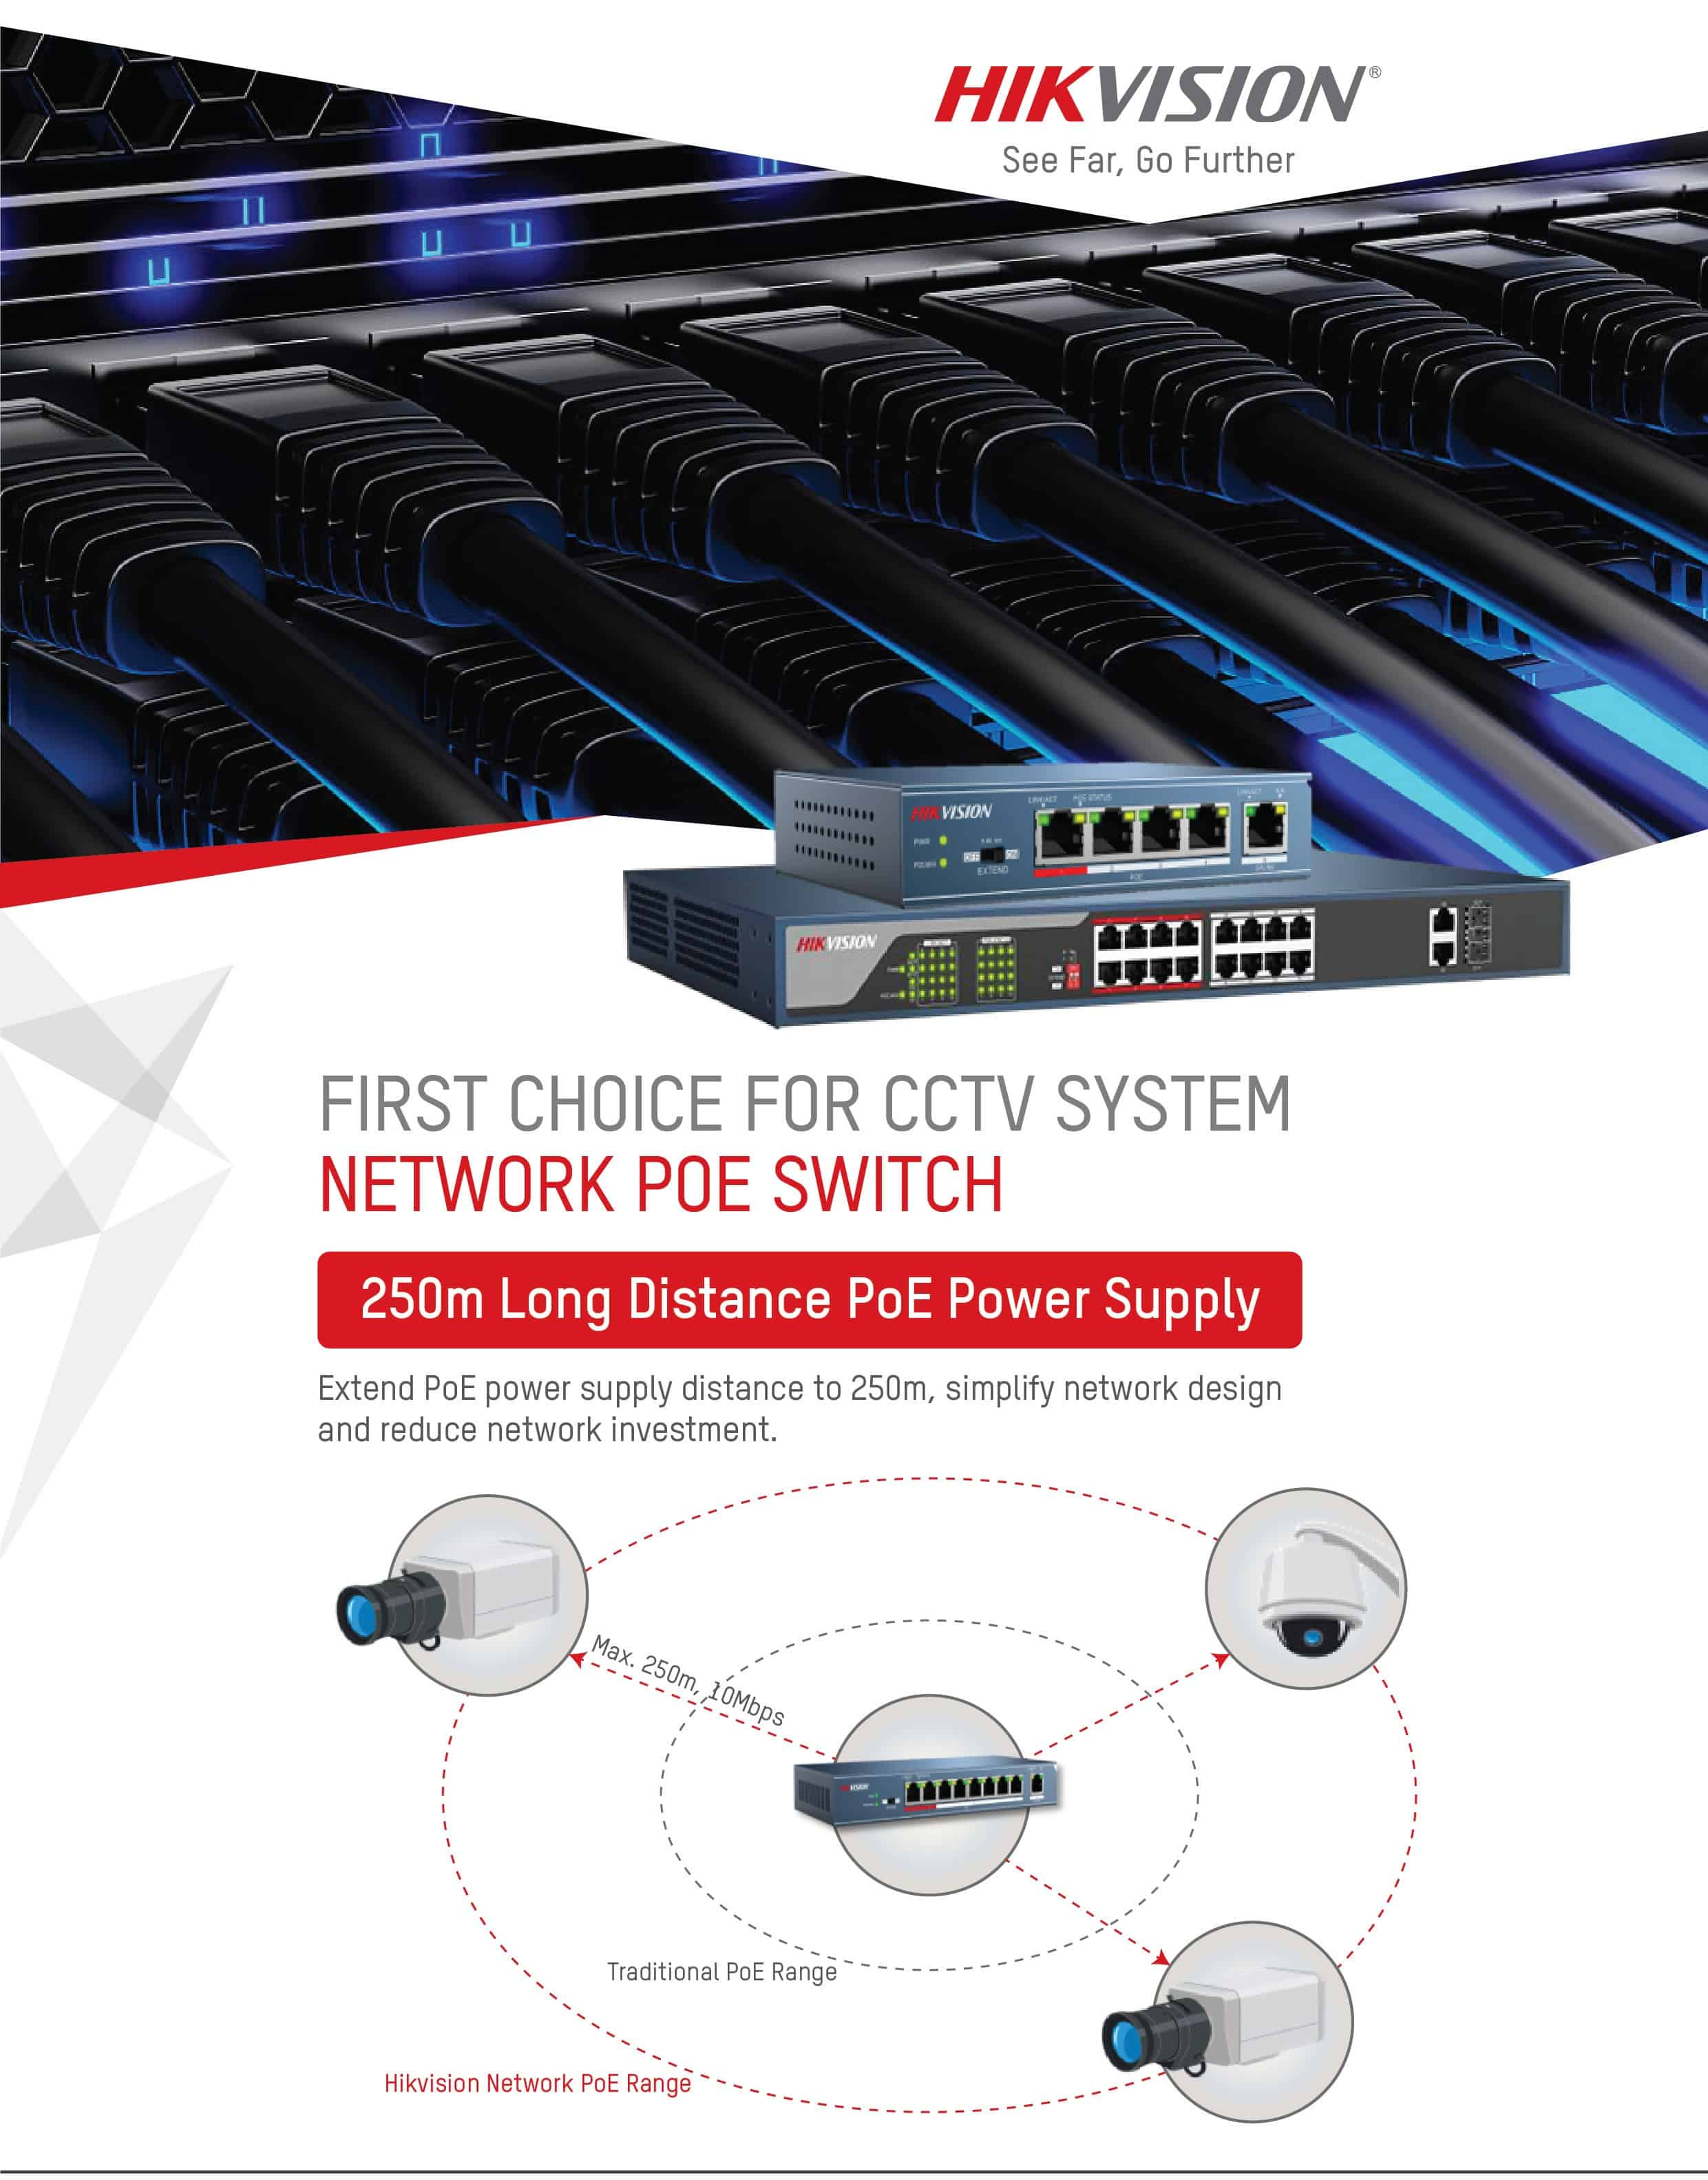 Hikvision CCTV System Network POE Switch